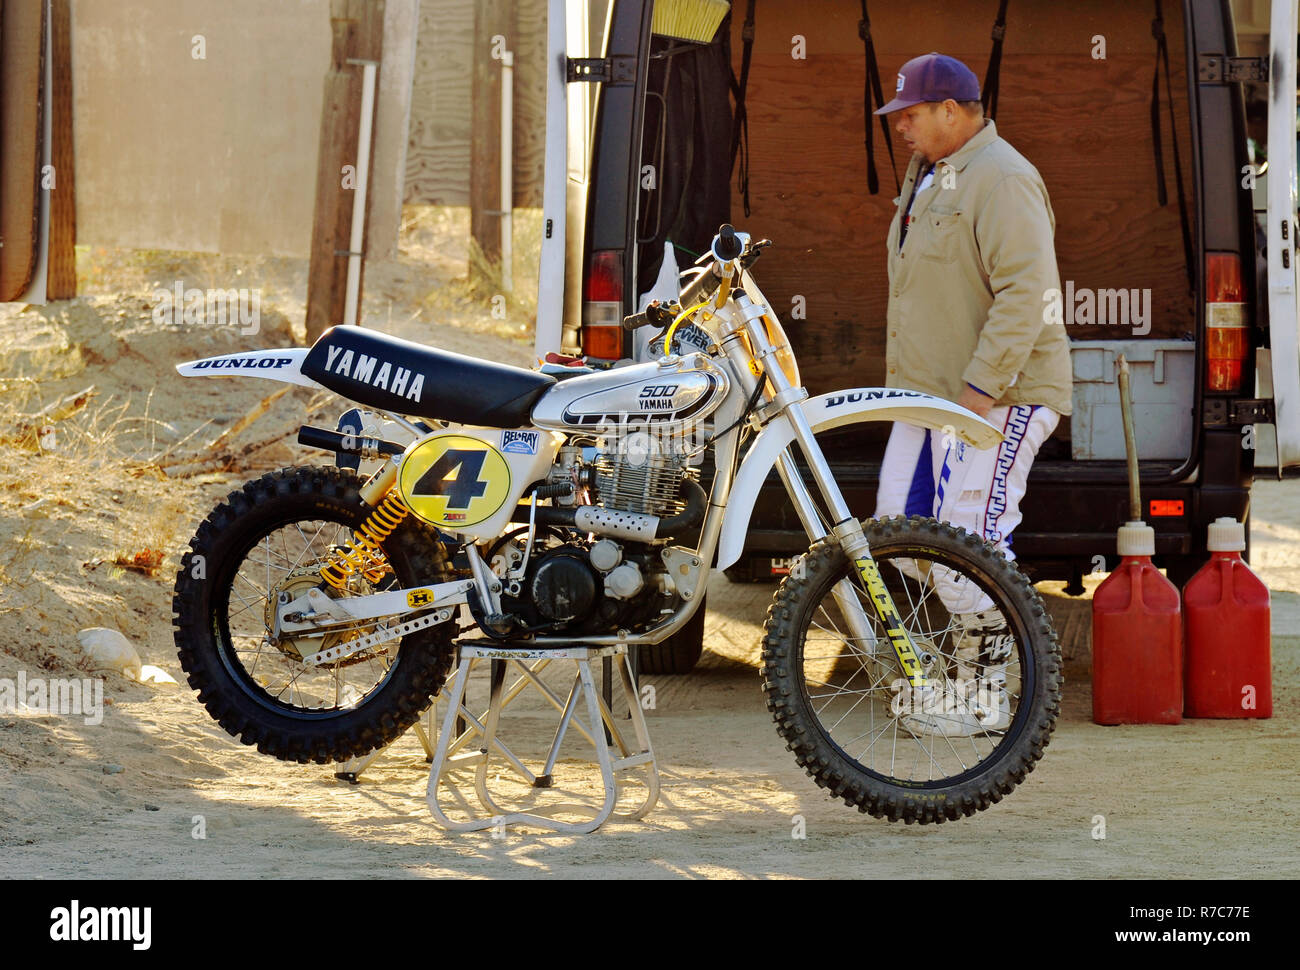 custom built four-stroke Yamaha dirt bike - Stock Image